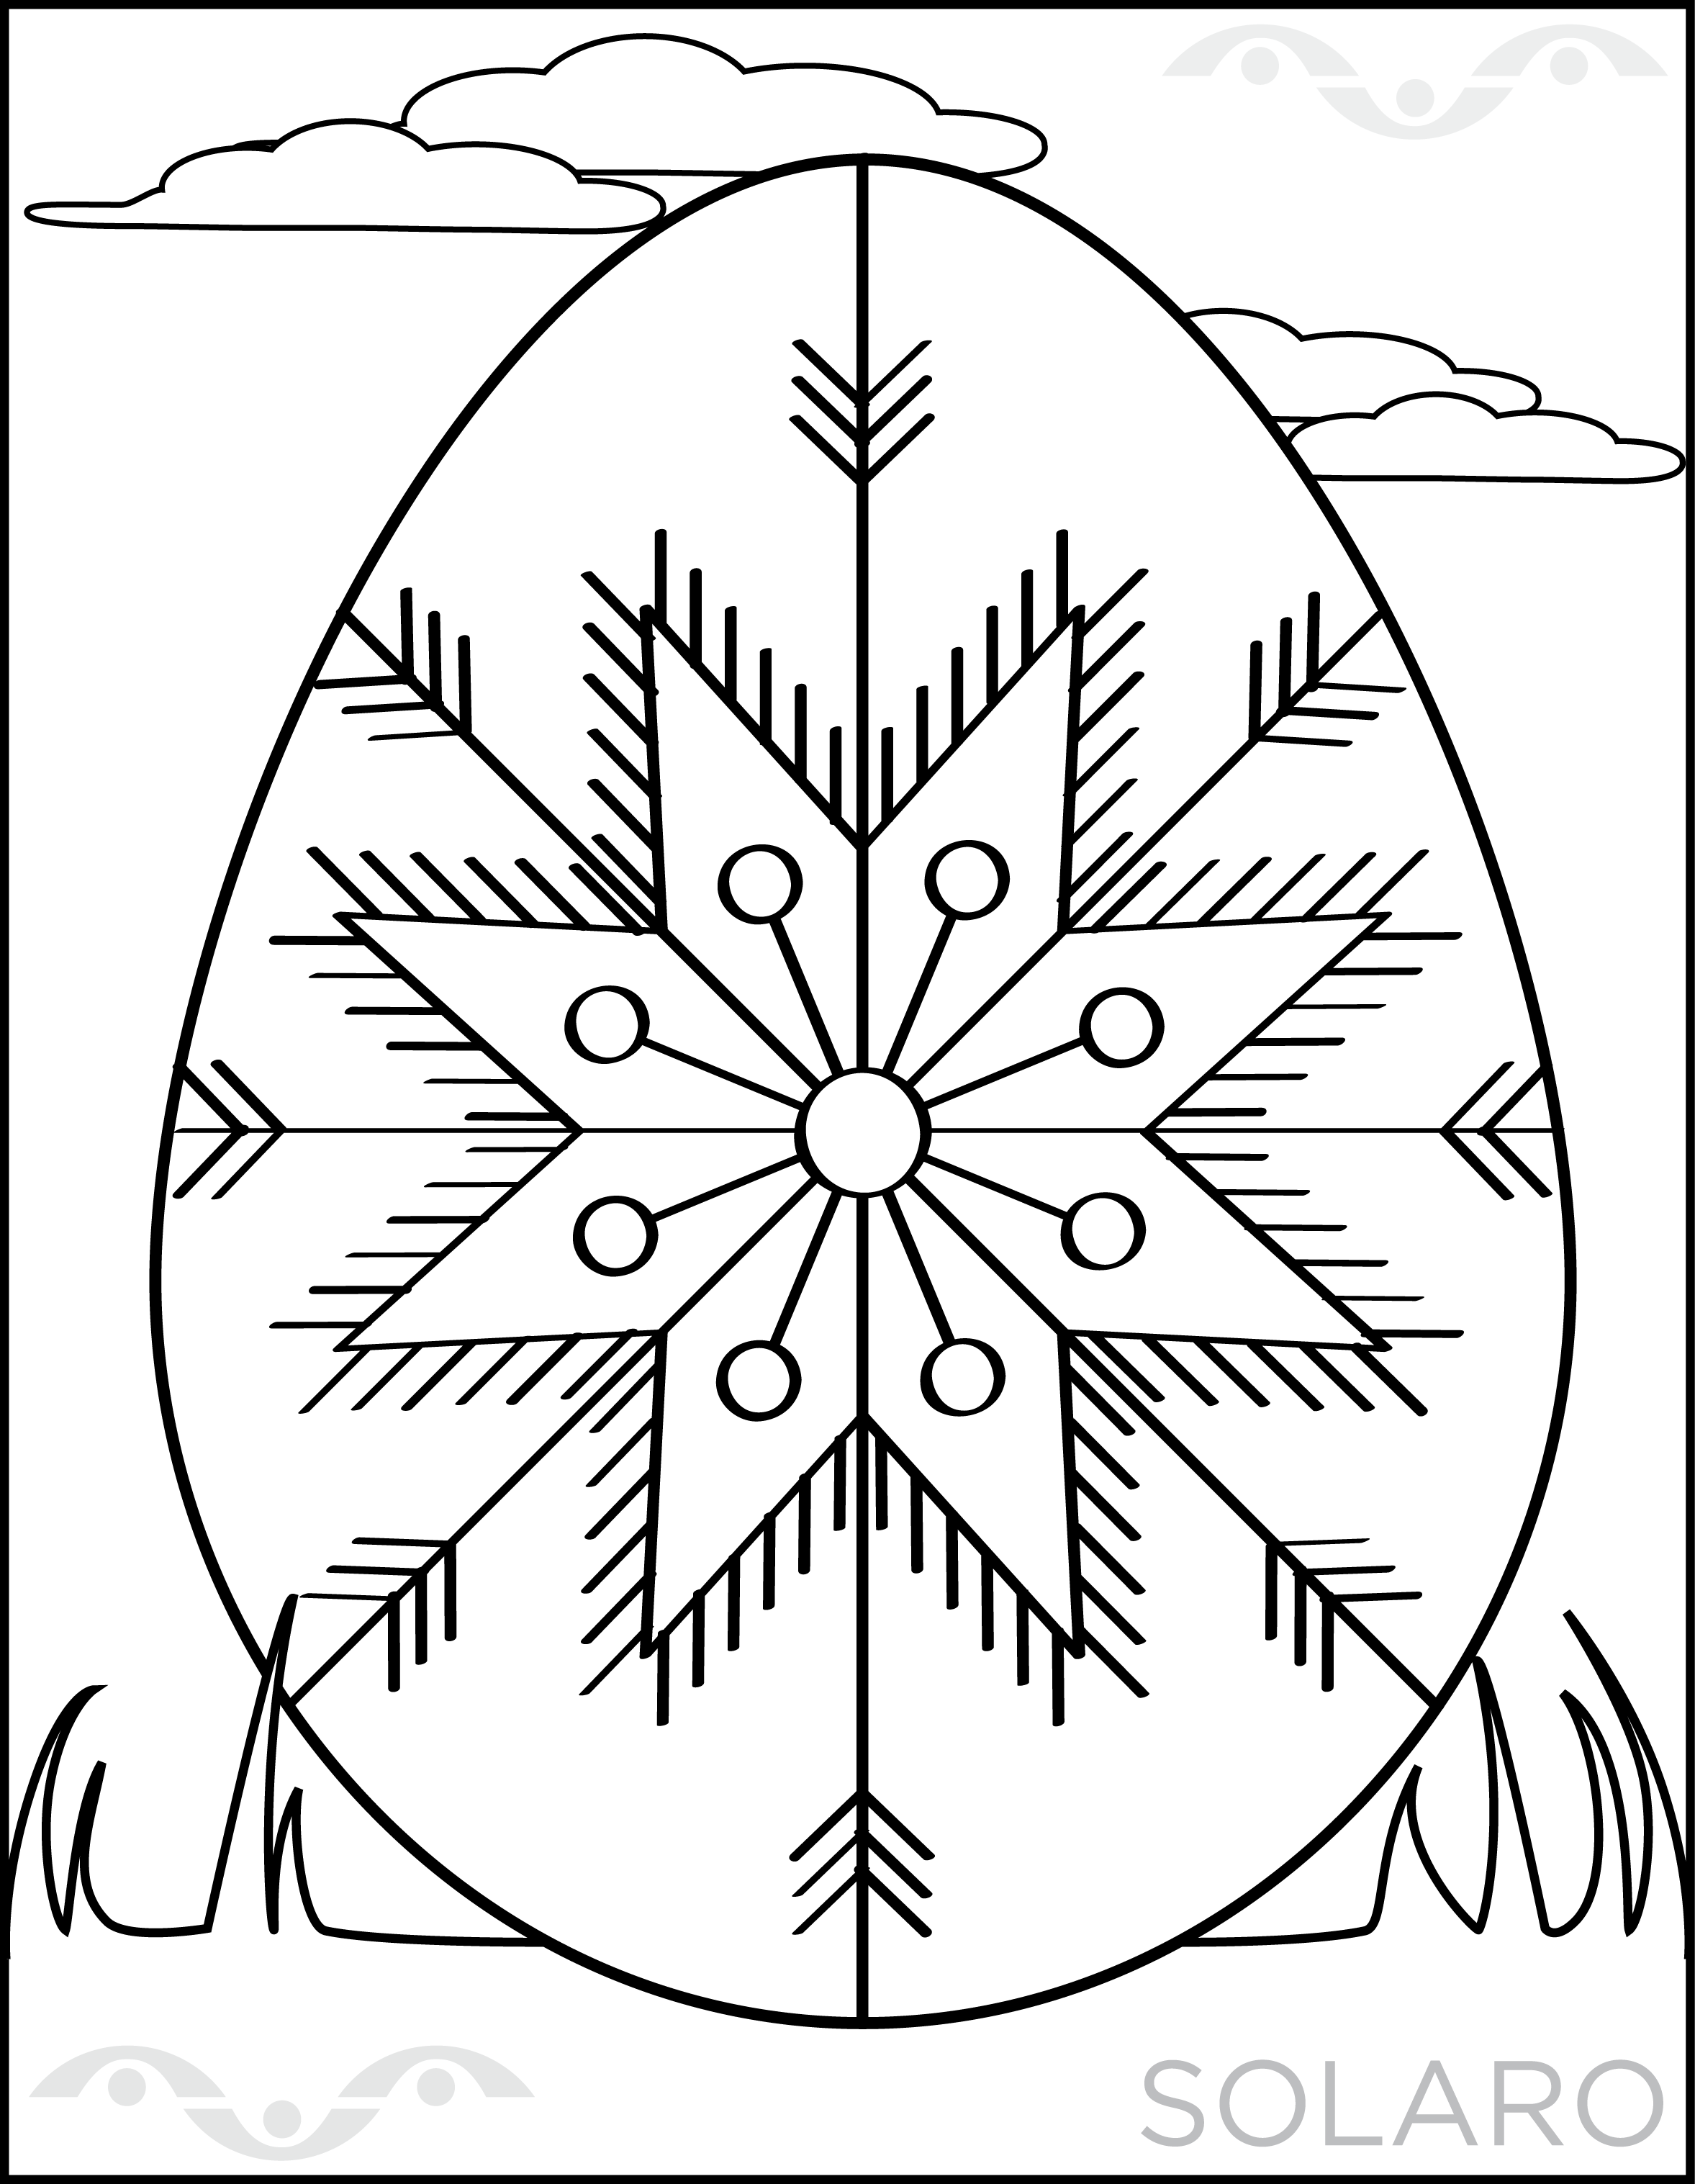 coloring pages ukrainian easter eggs bored kids on spring break still stuck in class eggs easter coloring pages ukrainian